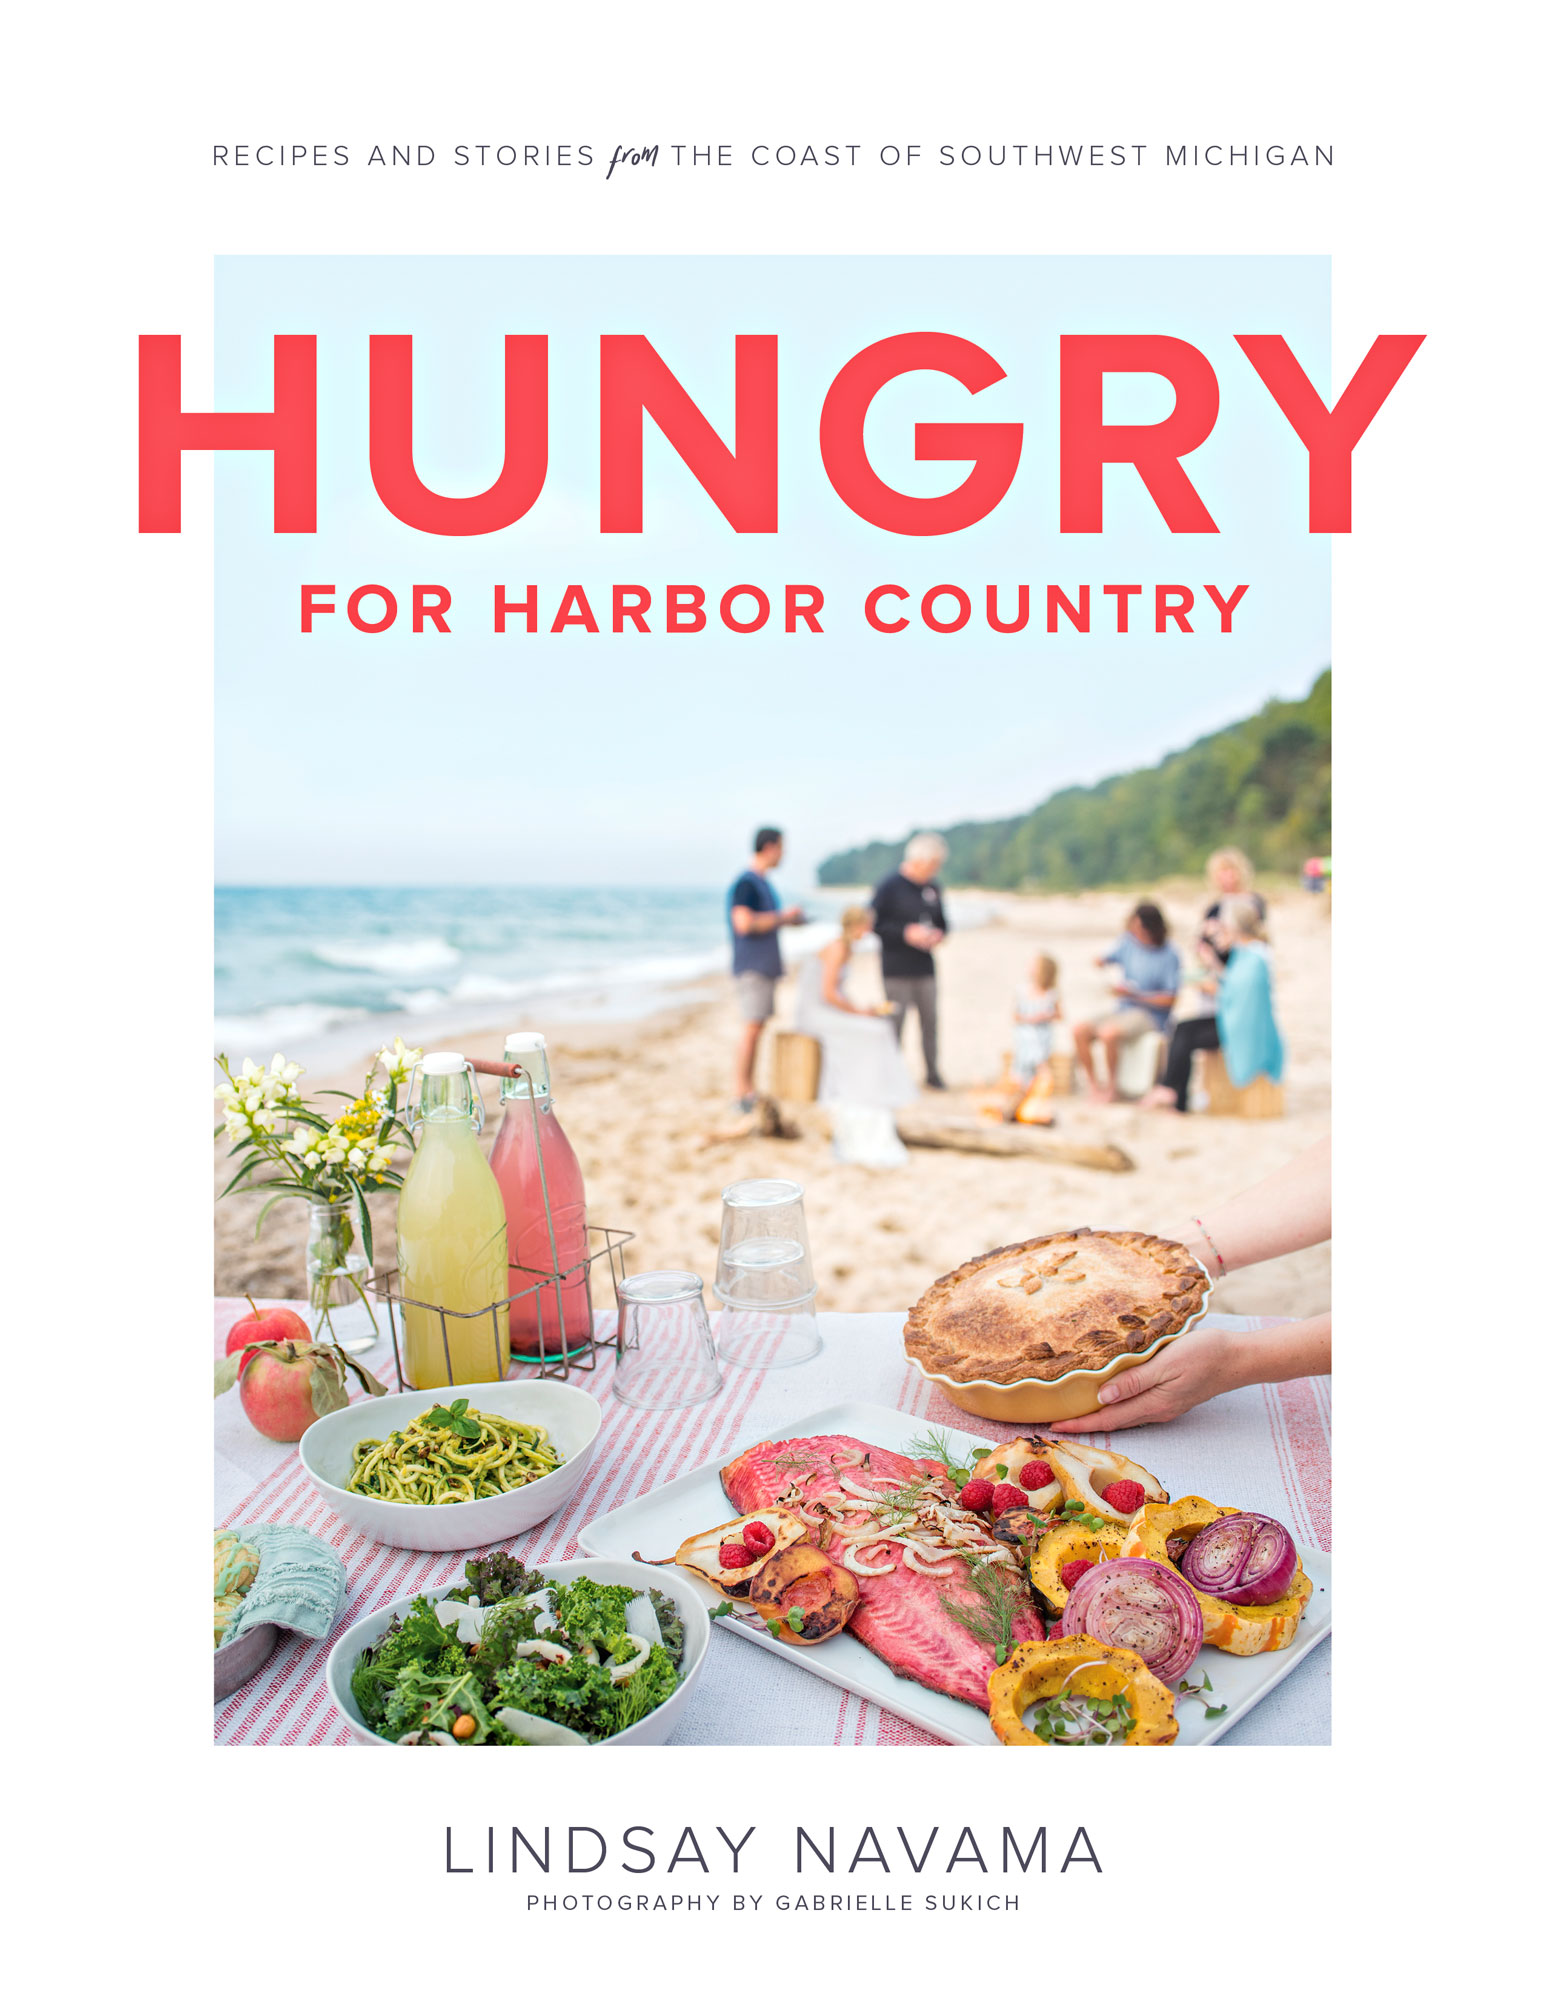 Hungry for Harbor Country